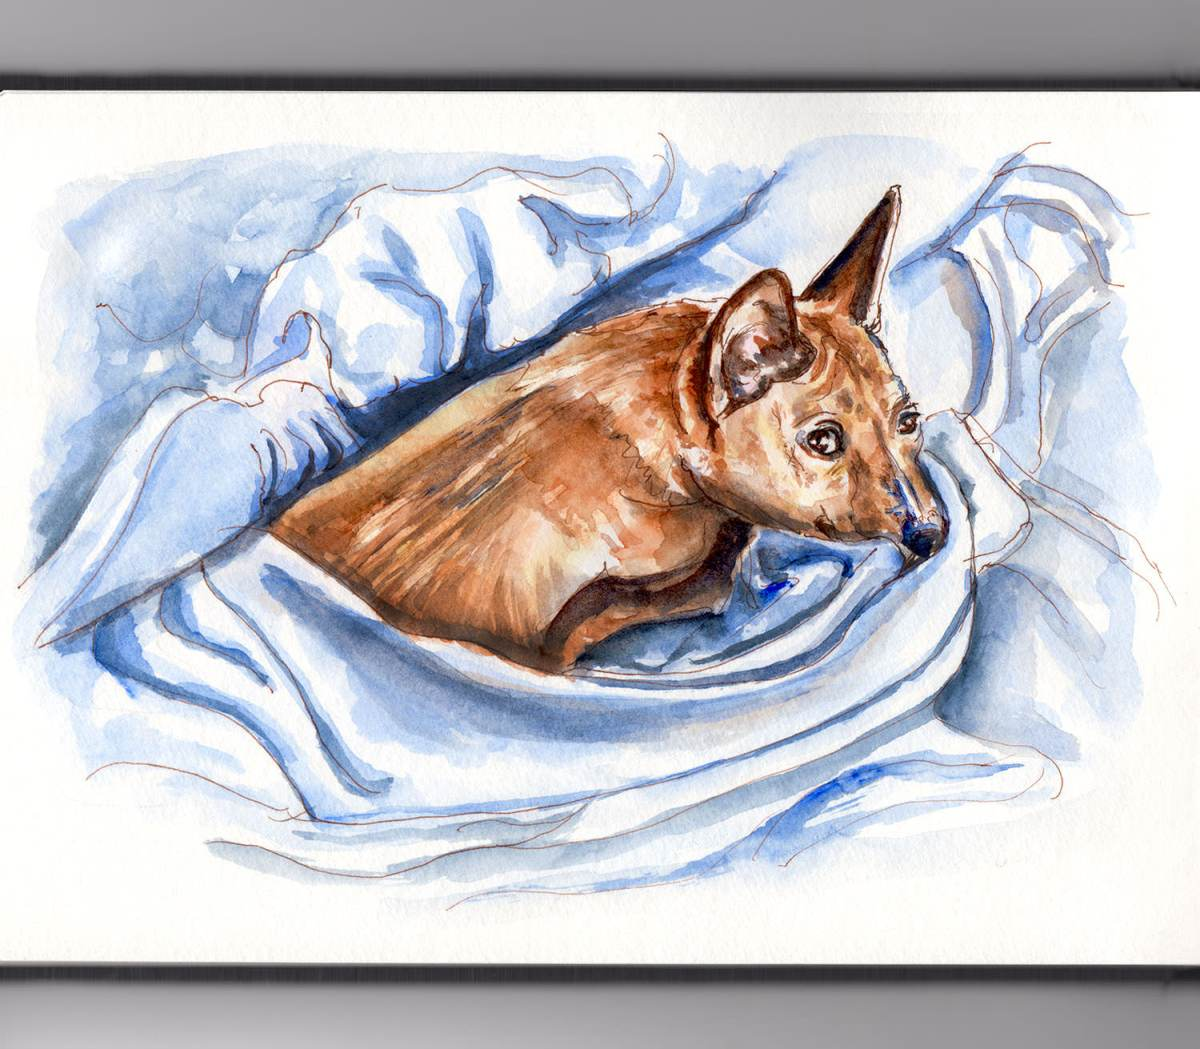 #WorldWatercolorGroup - Day 1 - A Freshly Made Bed - Basenji - Doodlewash